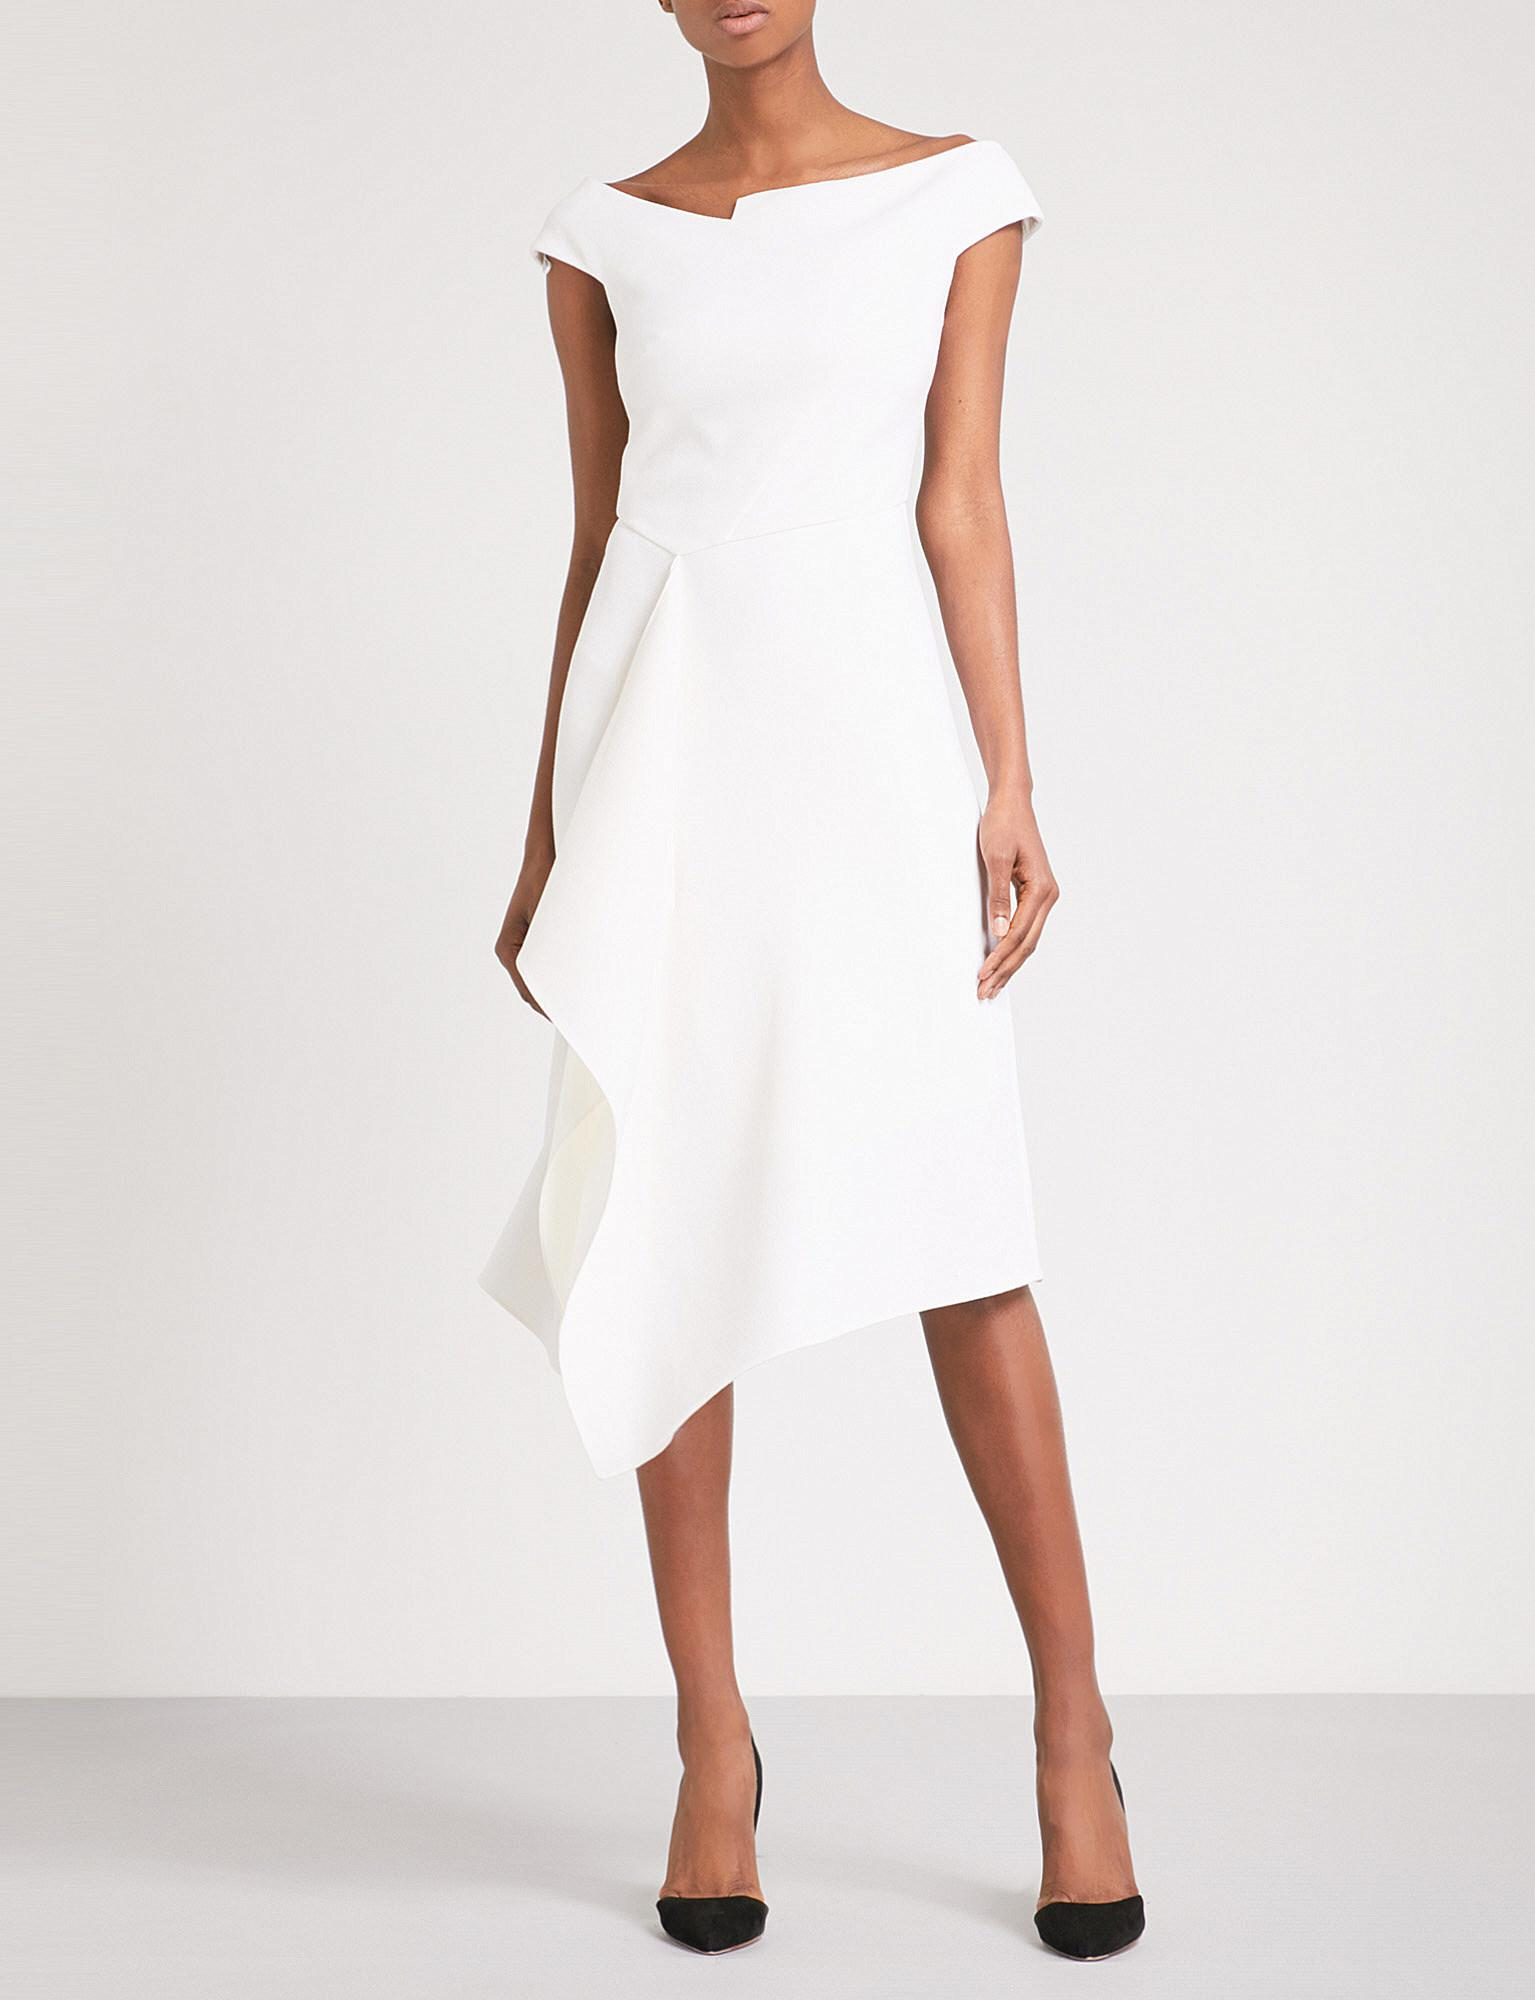 5519d714c8525 Roland Mouret Barwick Fit-and-flare Wool-crepe Dress in White - Lyst